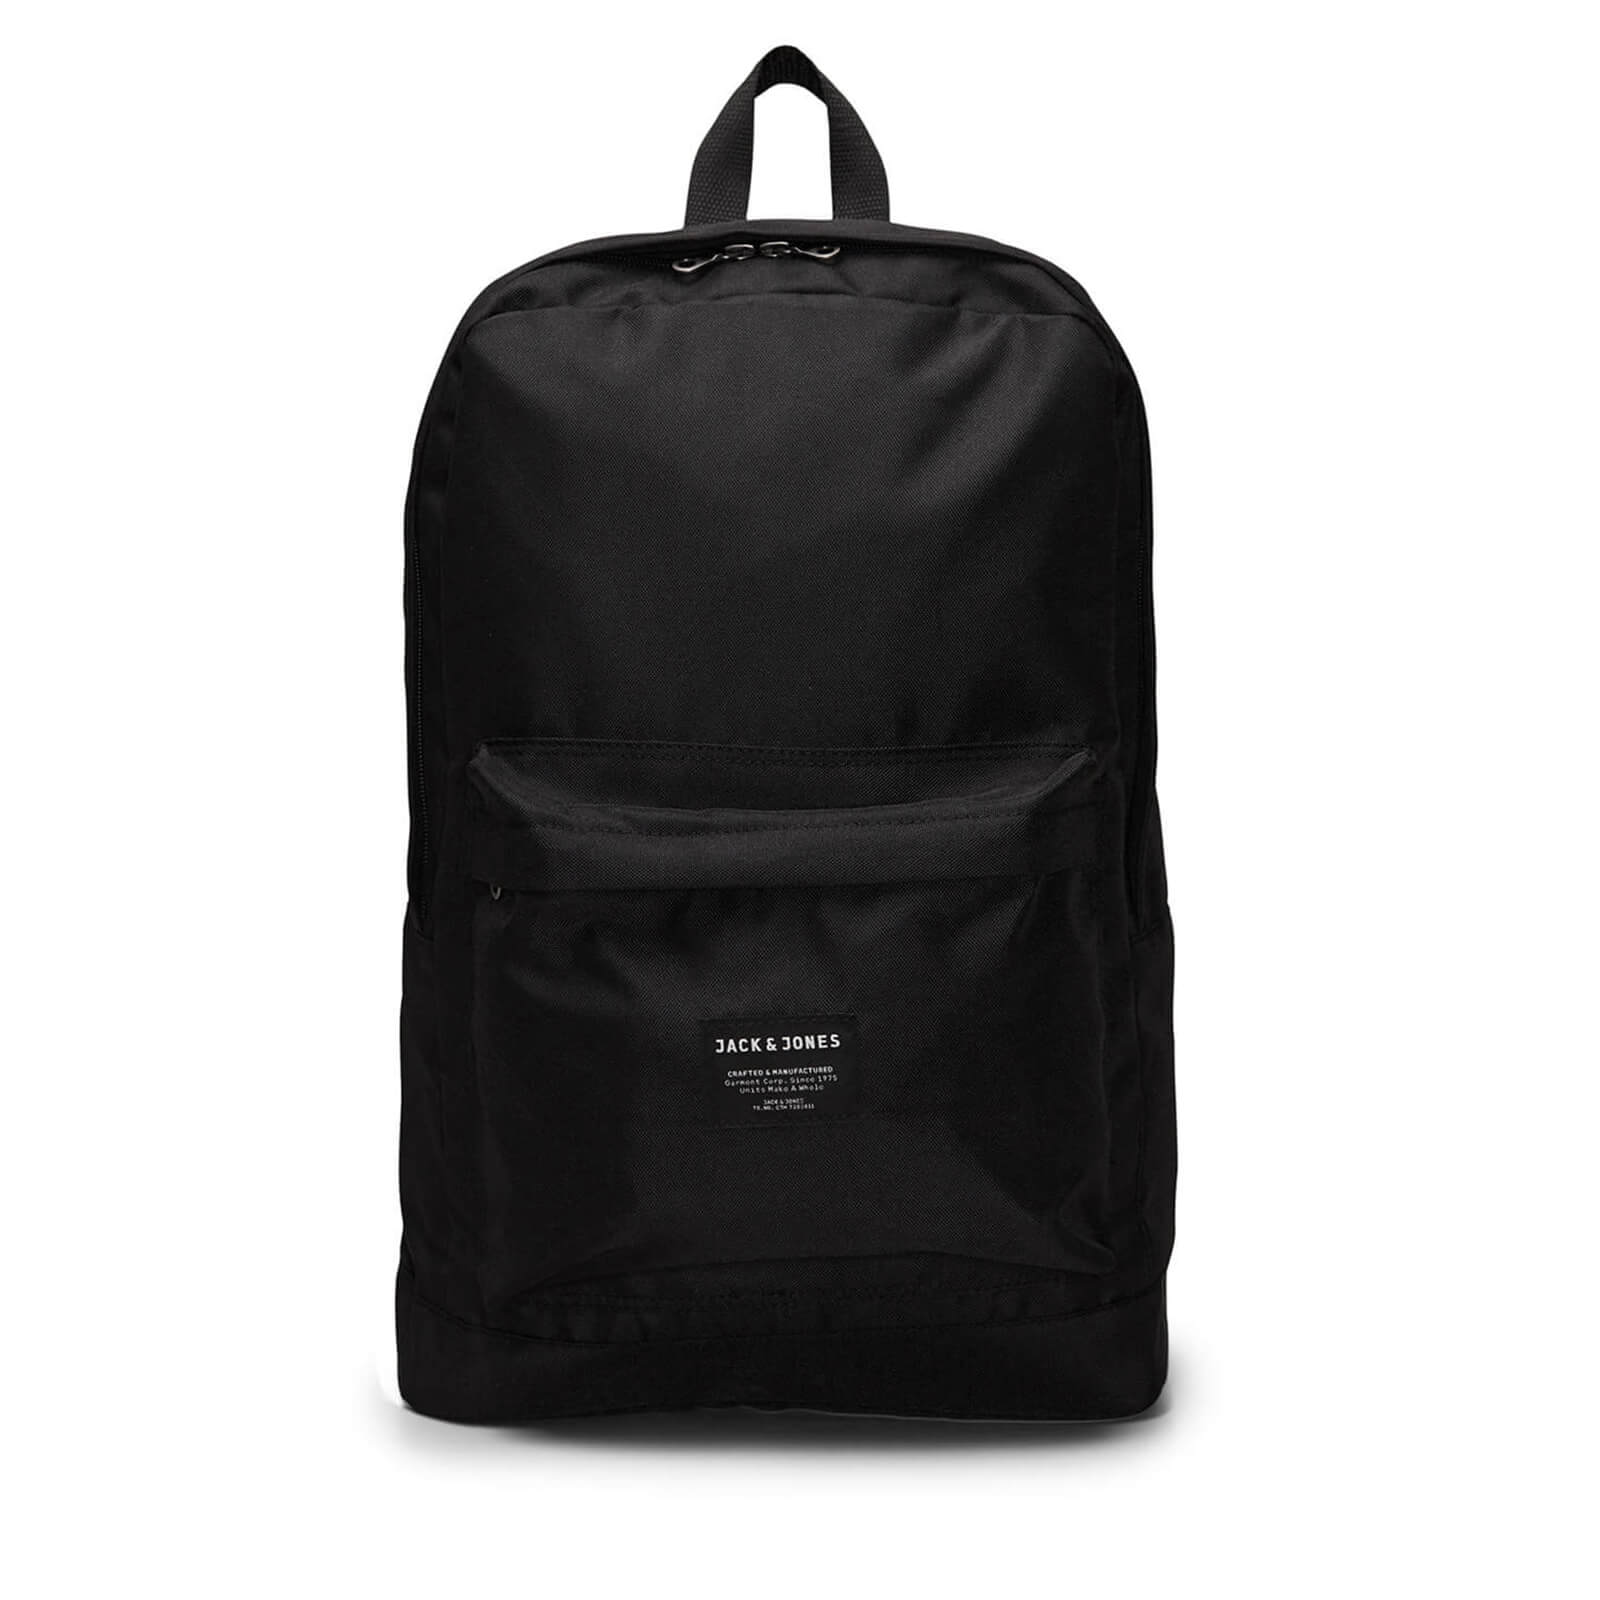 Sac à Dos Homme Jack & Jones Basic - Noir